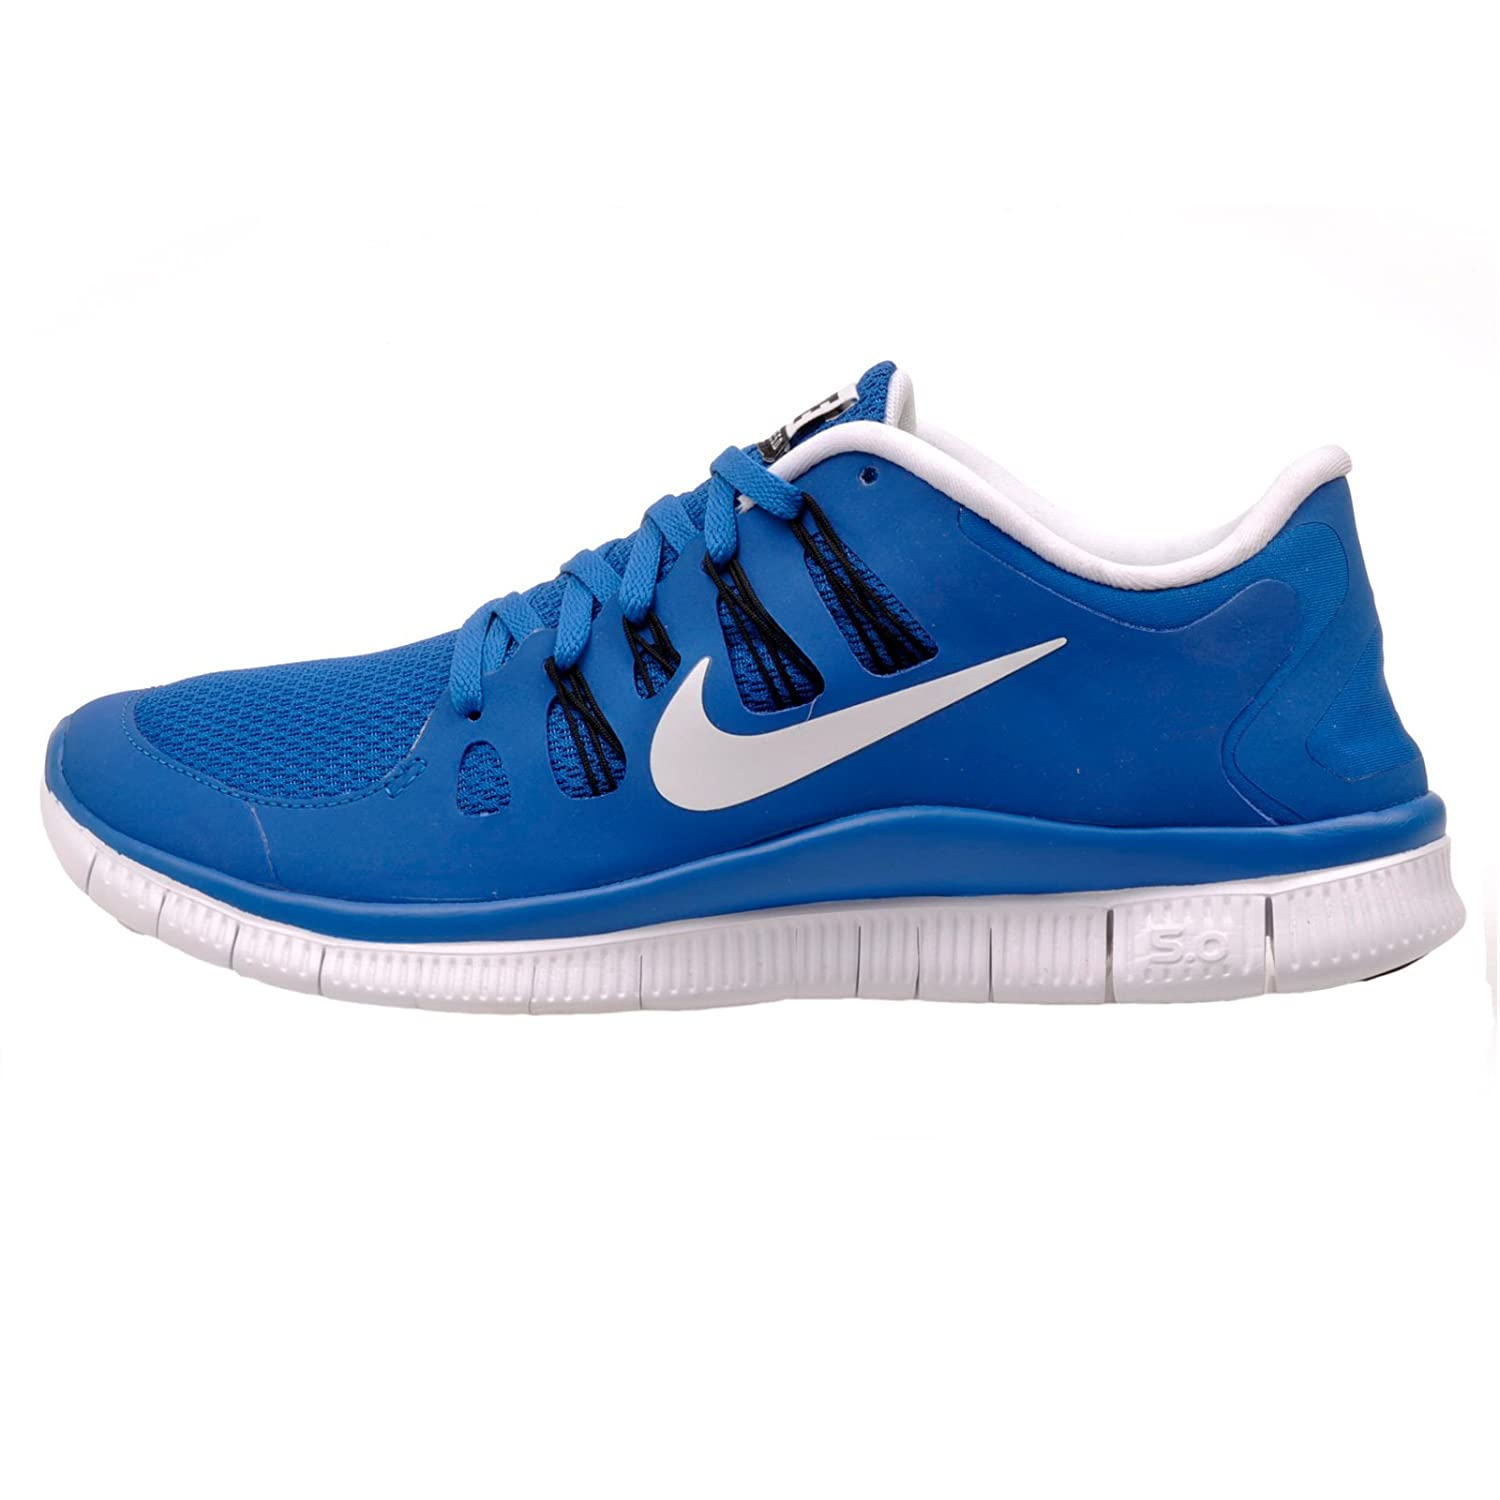 official photos 76a8b a9ee3 Nike Free 5.0+ Men u0026 39 s Running Shoes